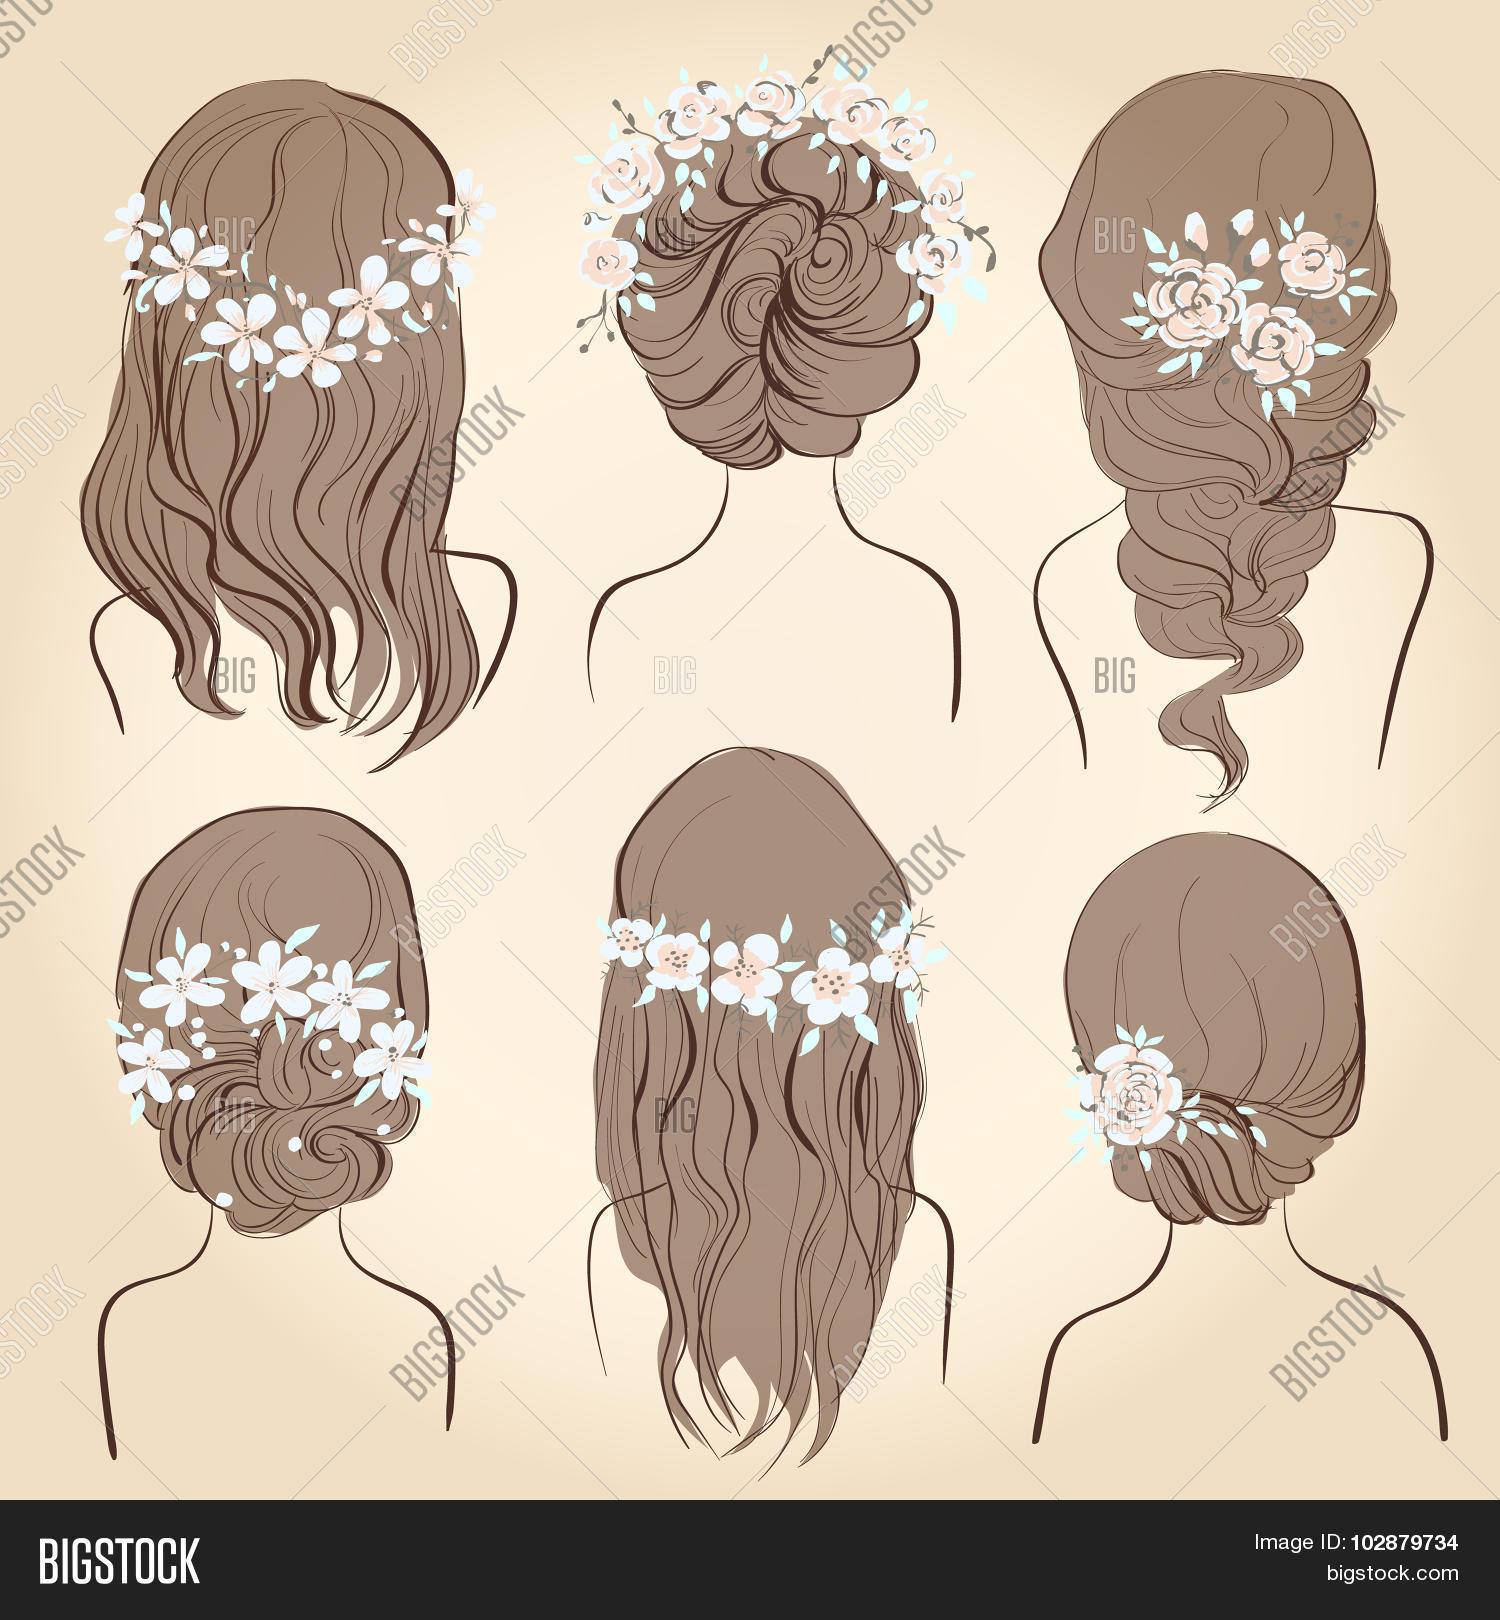 Set of different vintage style hairstyles wedding hairstyles hair styles with flowers sketch hairstyle head female